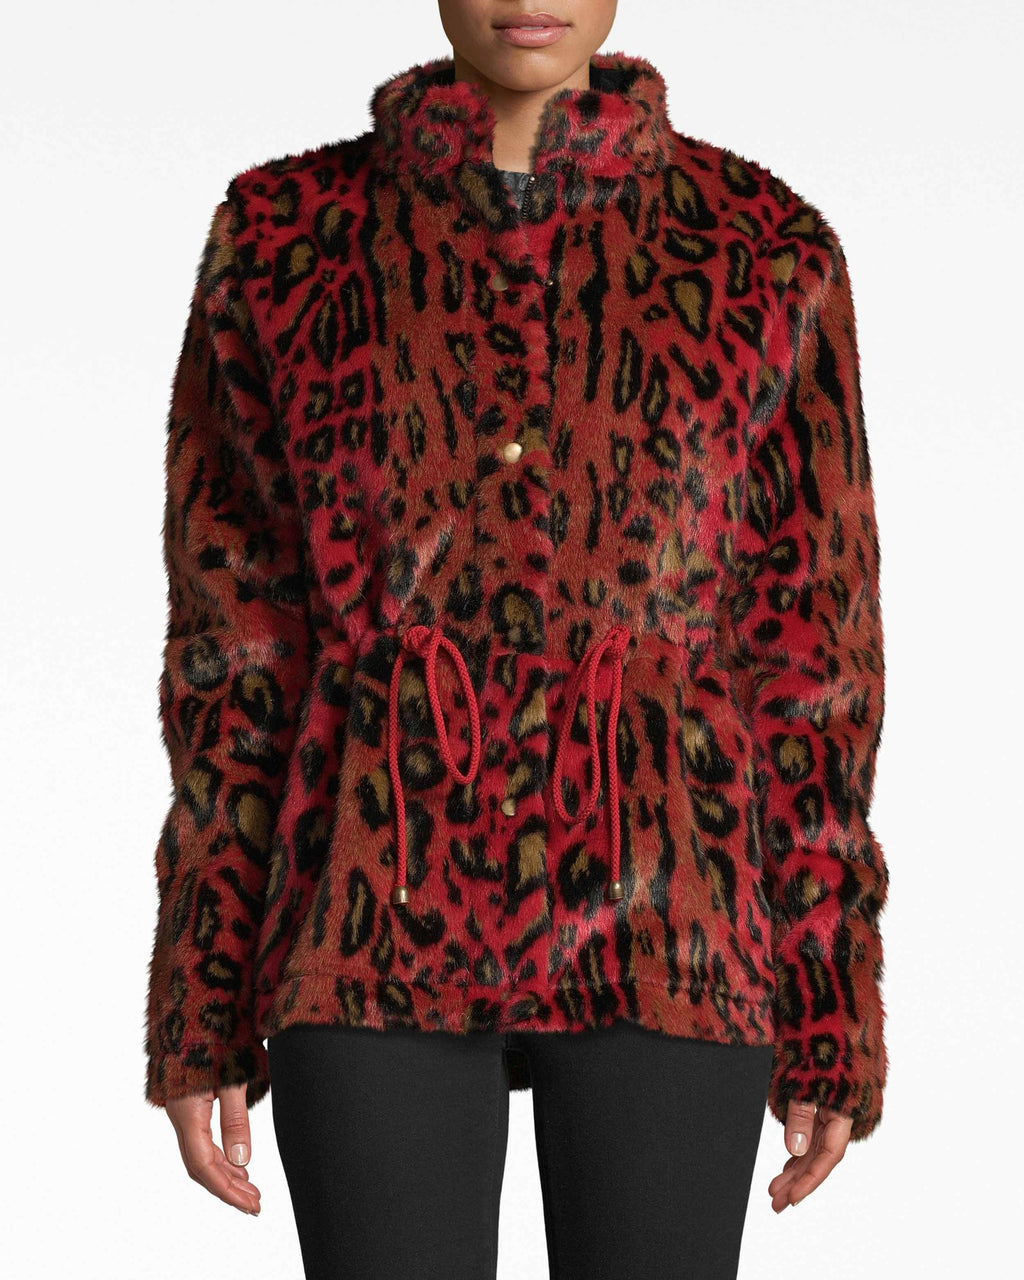 CO10134 - LEOPARD FAUX FUR ANORAK JACKET - outerwear - jackets - How fierce. This faux fur leopard jacket is your new attention-grabber. The boldc colors are cushioned on super cozy fabrics. Ajustable drawstrings cinch in the body. Front zipper for closure.